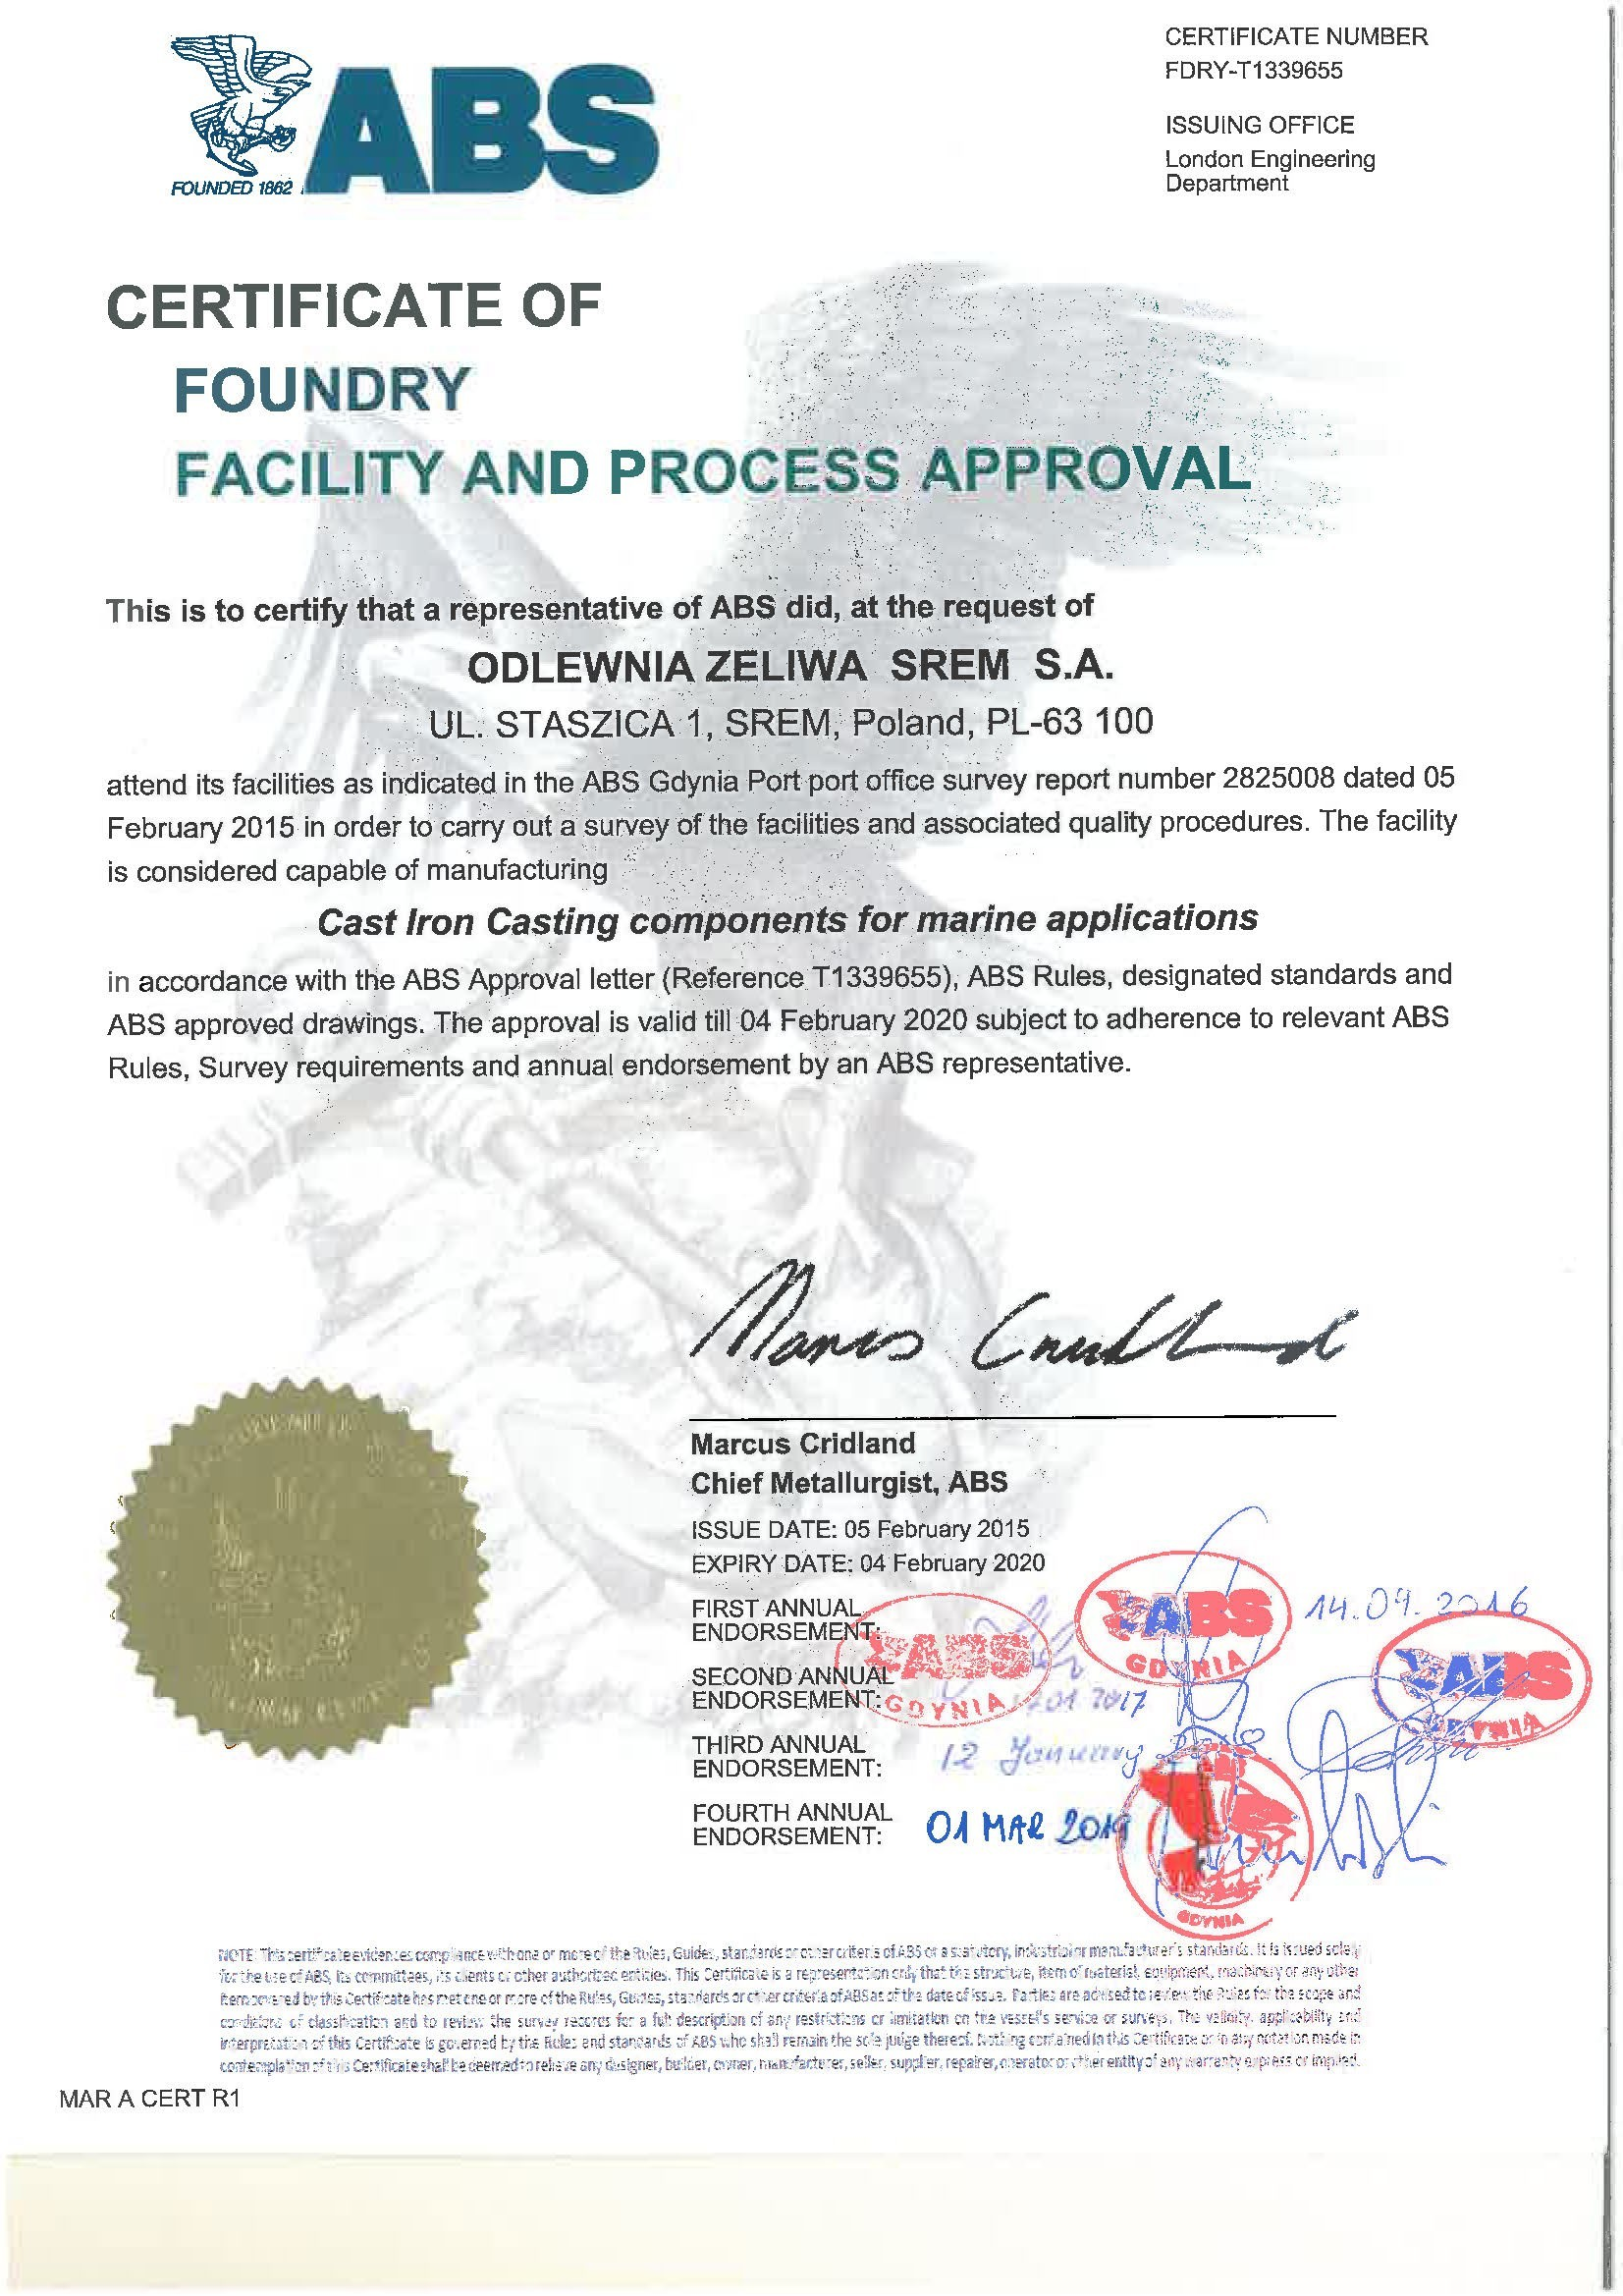 Certificate of Foundry Facility and Process Approval